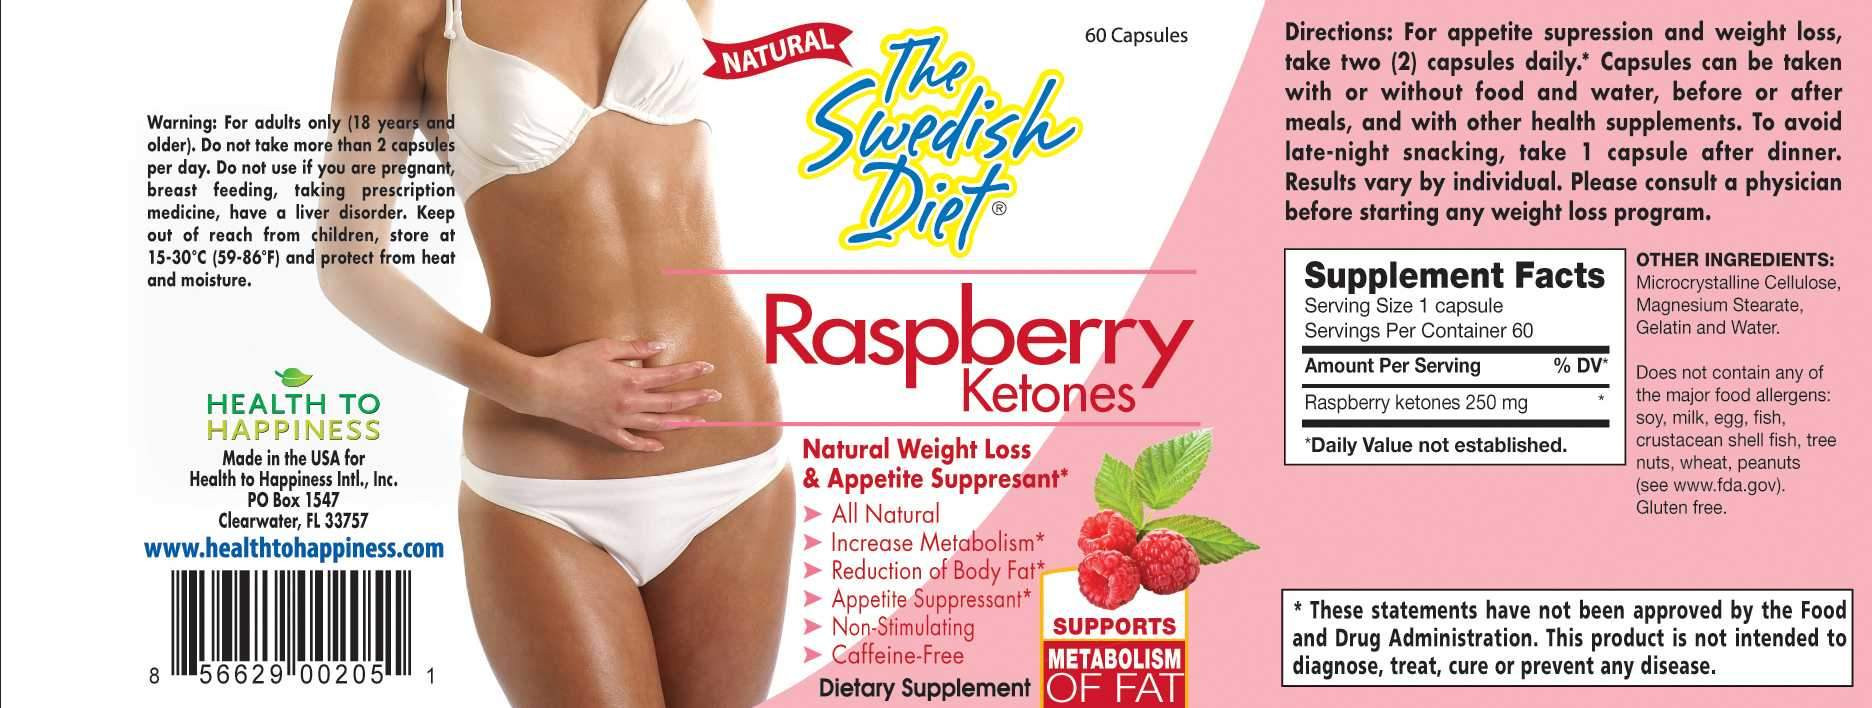 Raspberry Ketones Natural Weight Loss And Appetite Suppressant 60 Ca